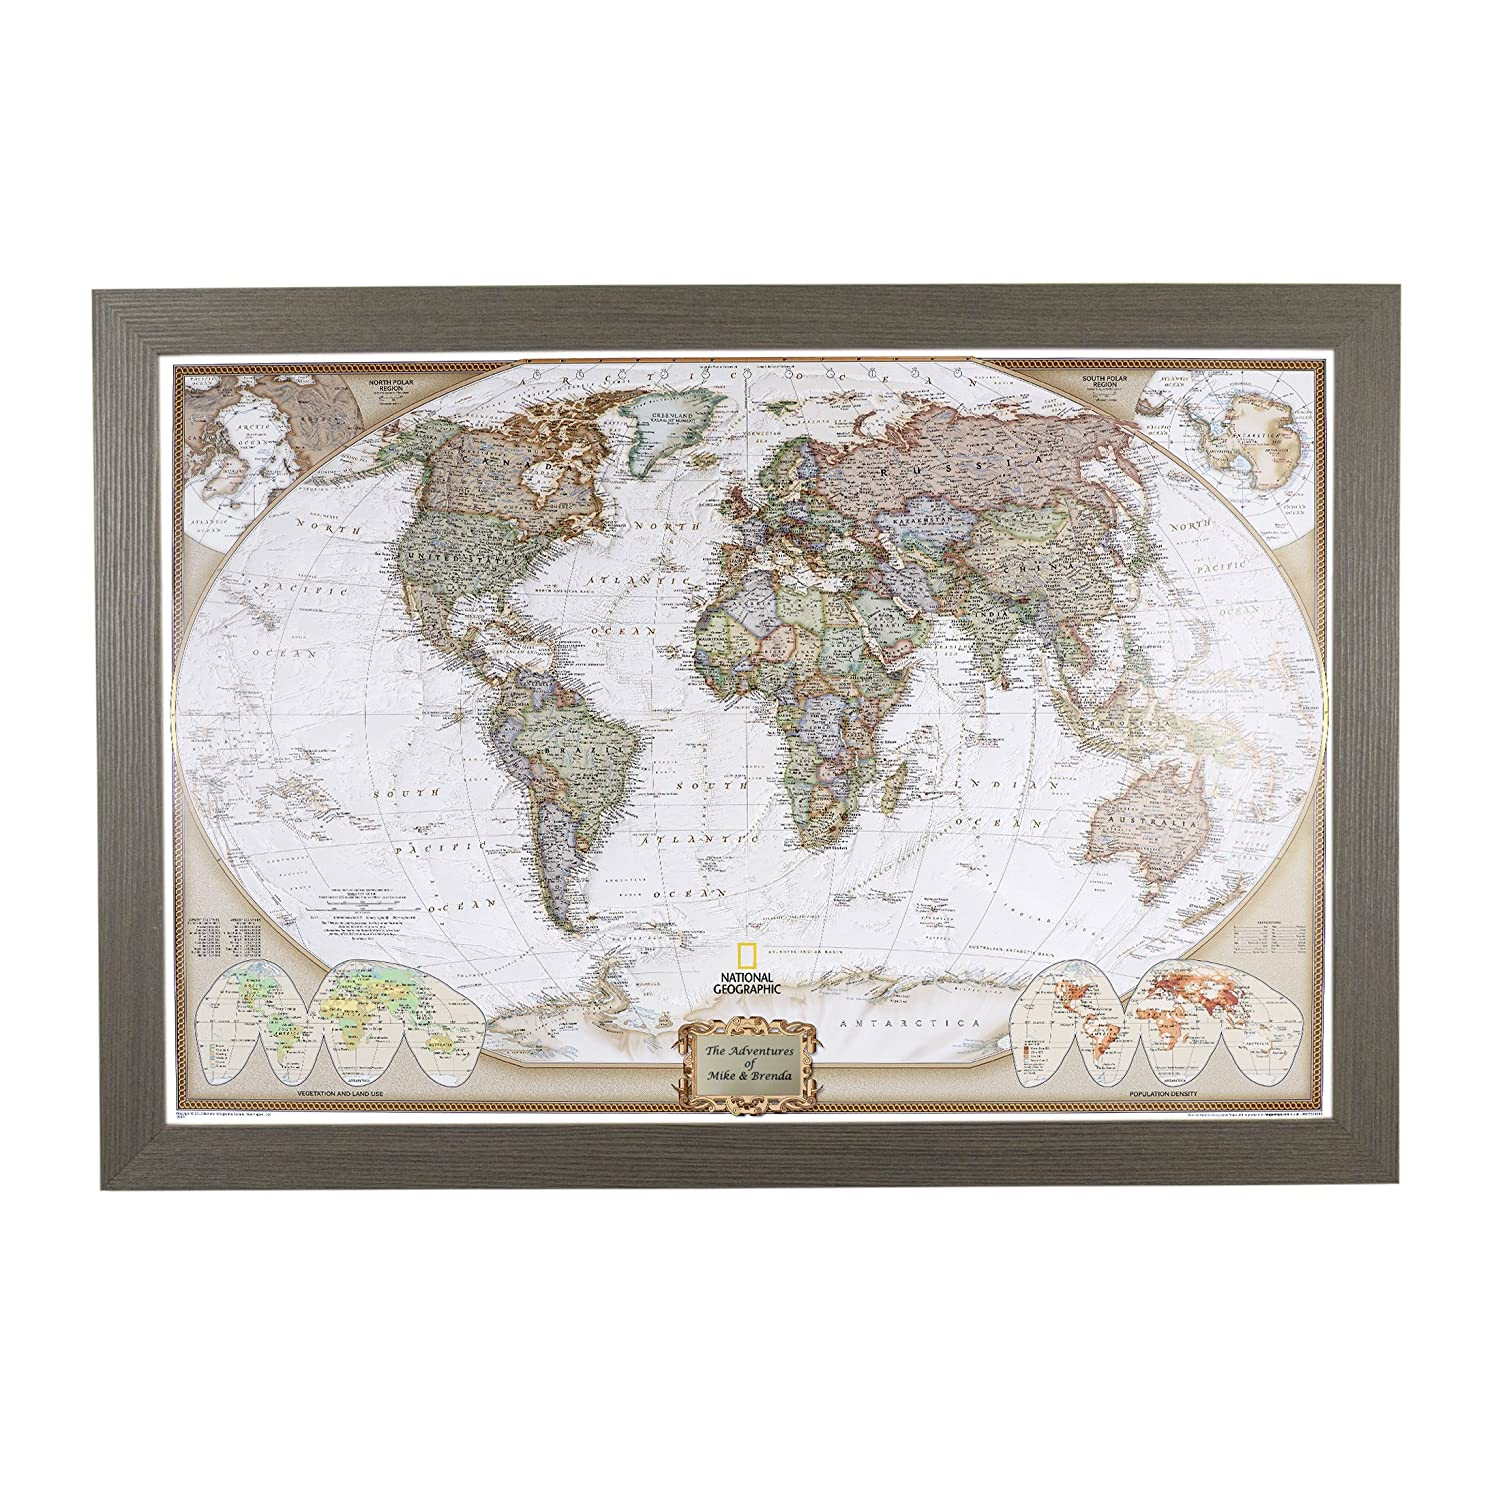 Push Pin Travel Maps Personalized Executive World with Barnwood Gray Frame  and Pins - 27.5 inches x 39.5 inches